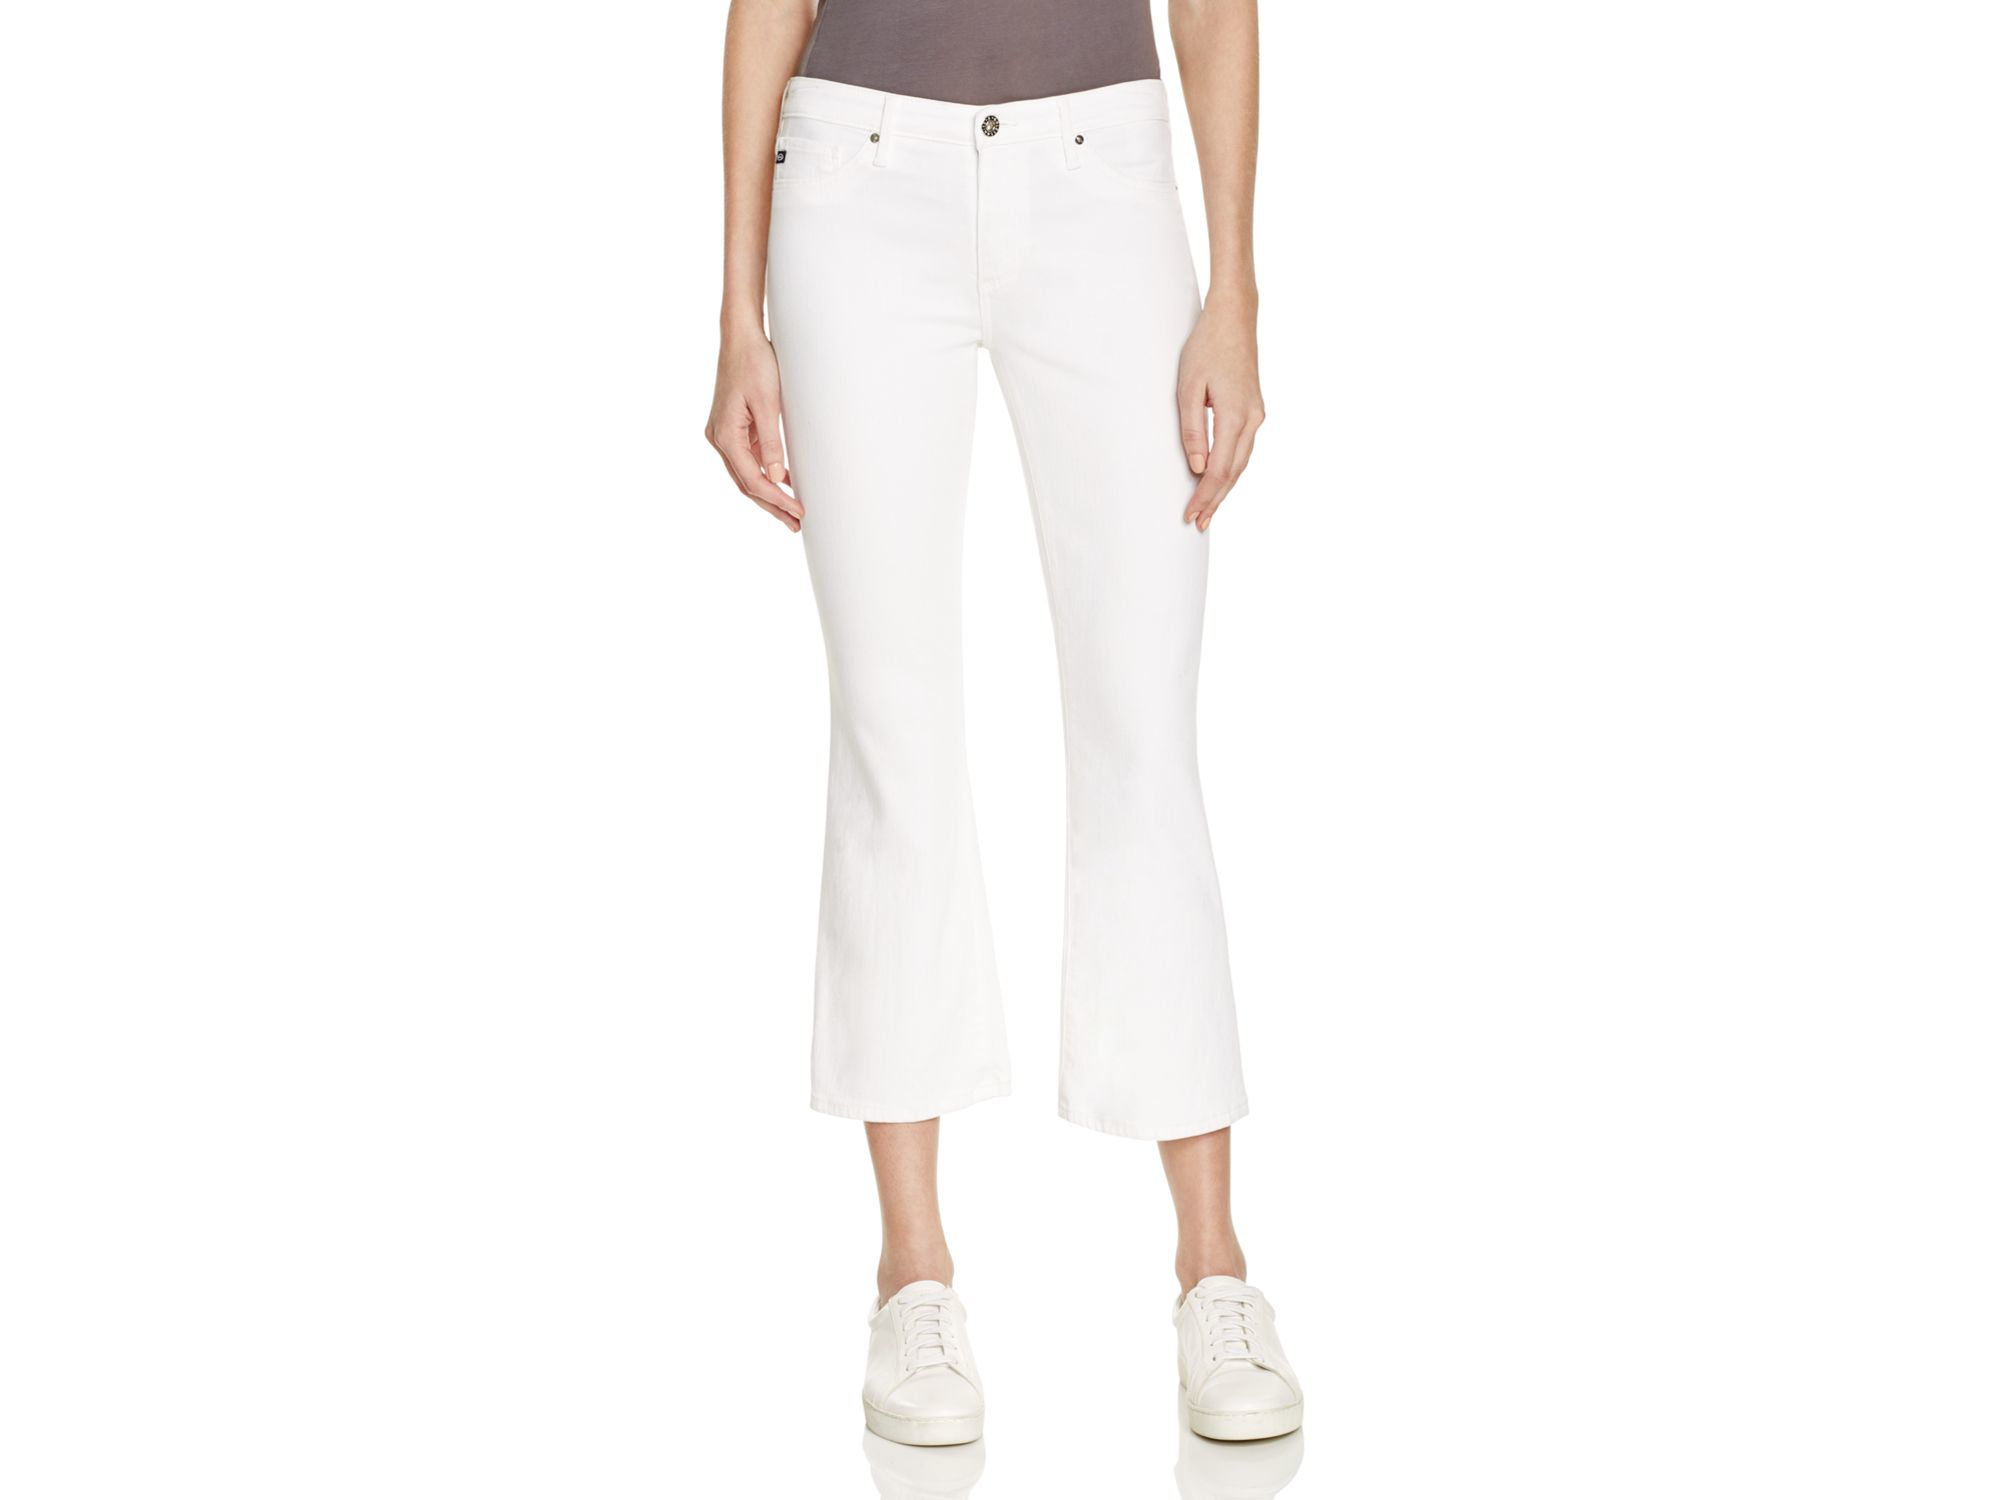 Ag jeans Jodi Cropped Bootcut Jeans In White in White | Lyst